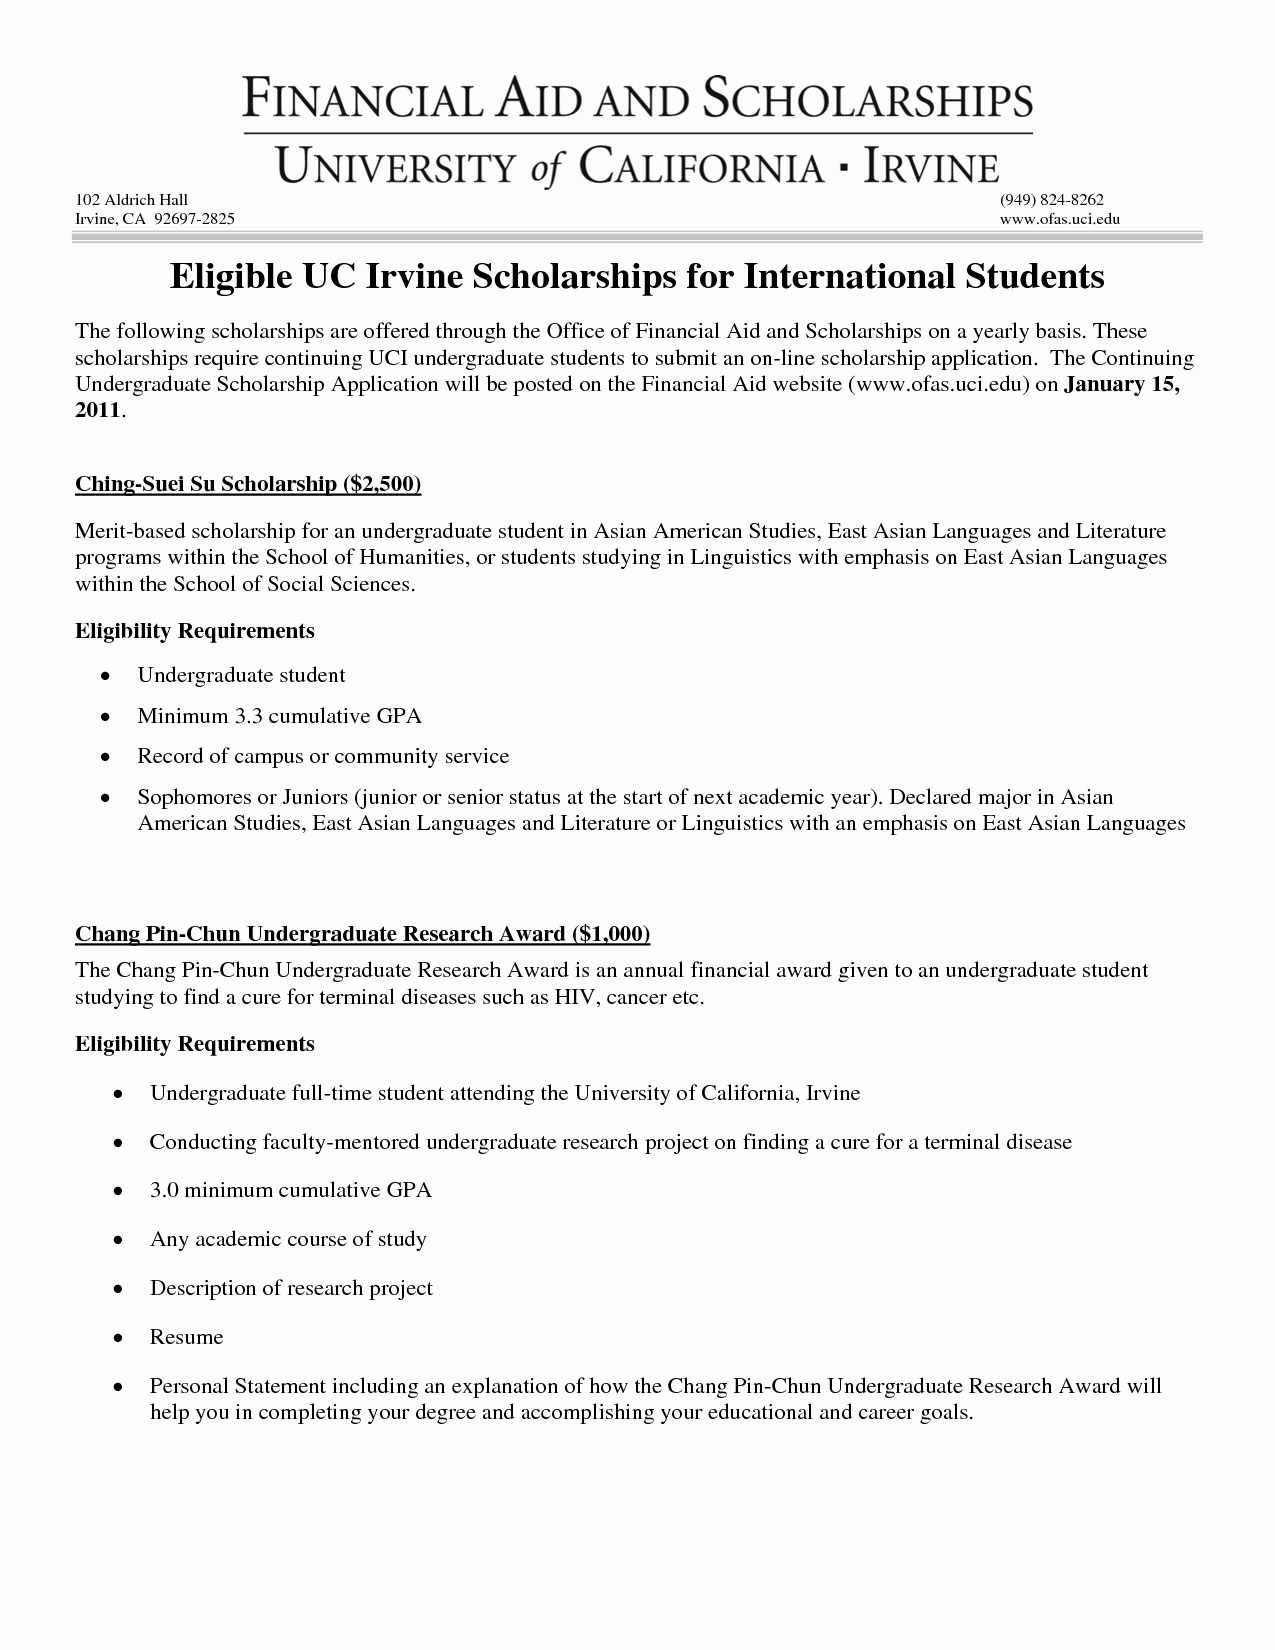 Financial Statement Letter Sample Unique Financial Need Scholarship Letter Examples